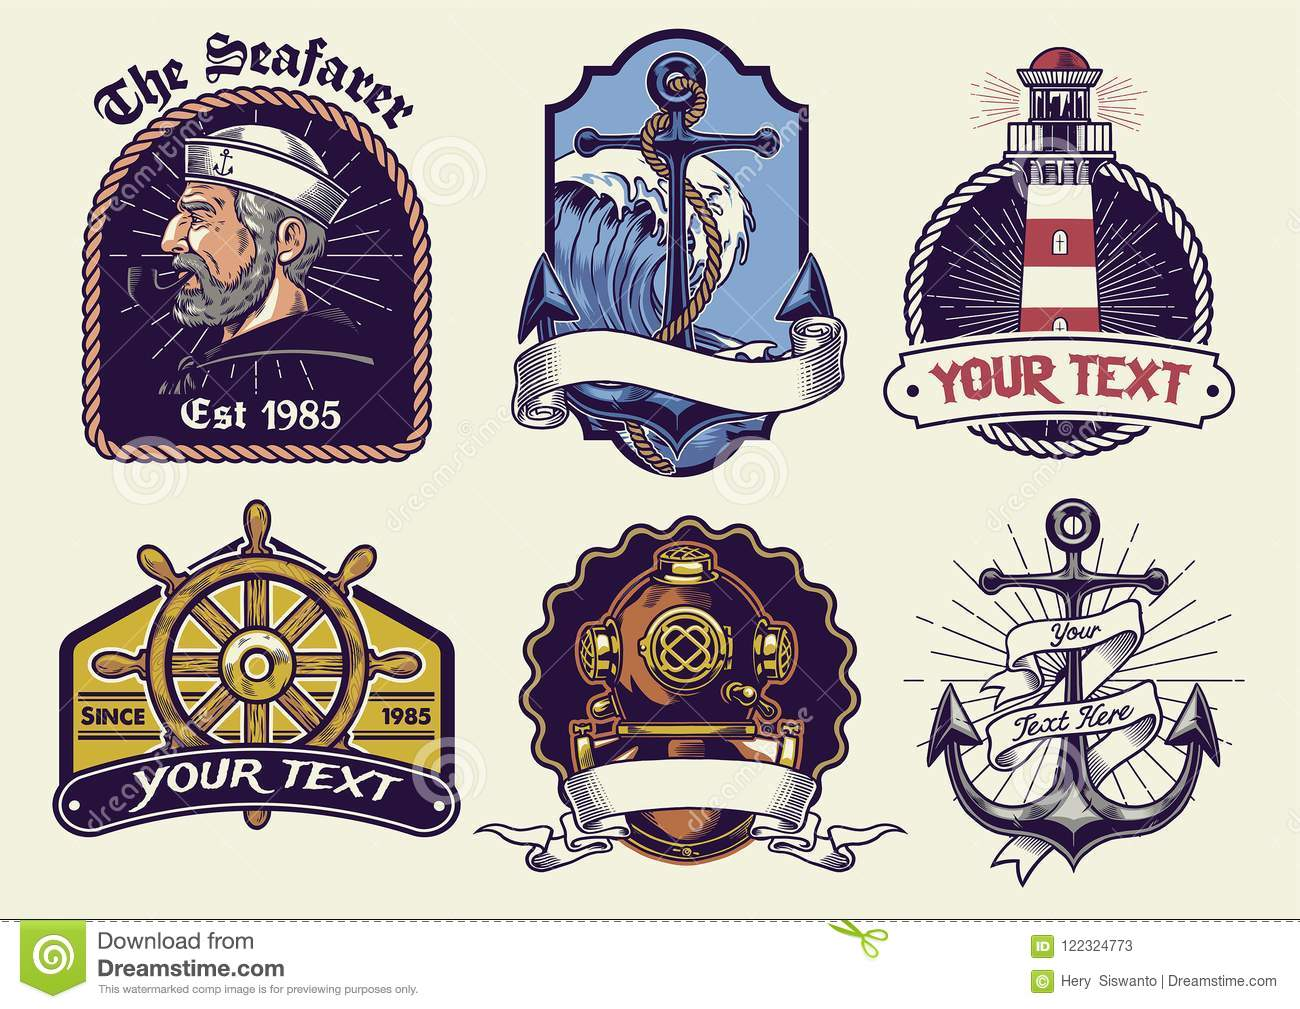 Vintage Look Badges Design Collection Nautical In Vintage Look Stock Vector - Illustration Of Sailor, Expedition: 122324773